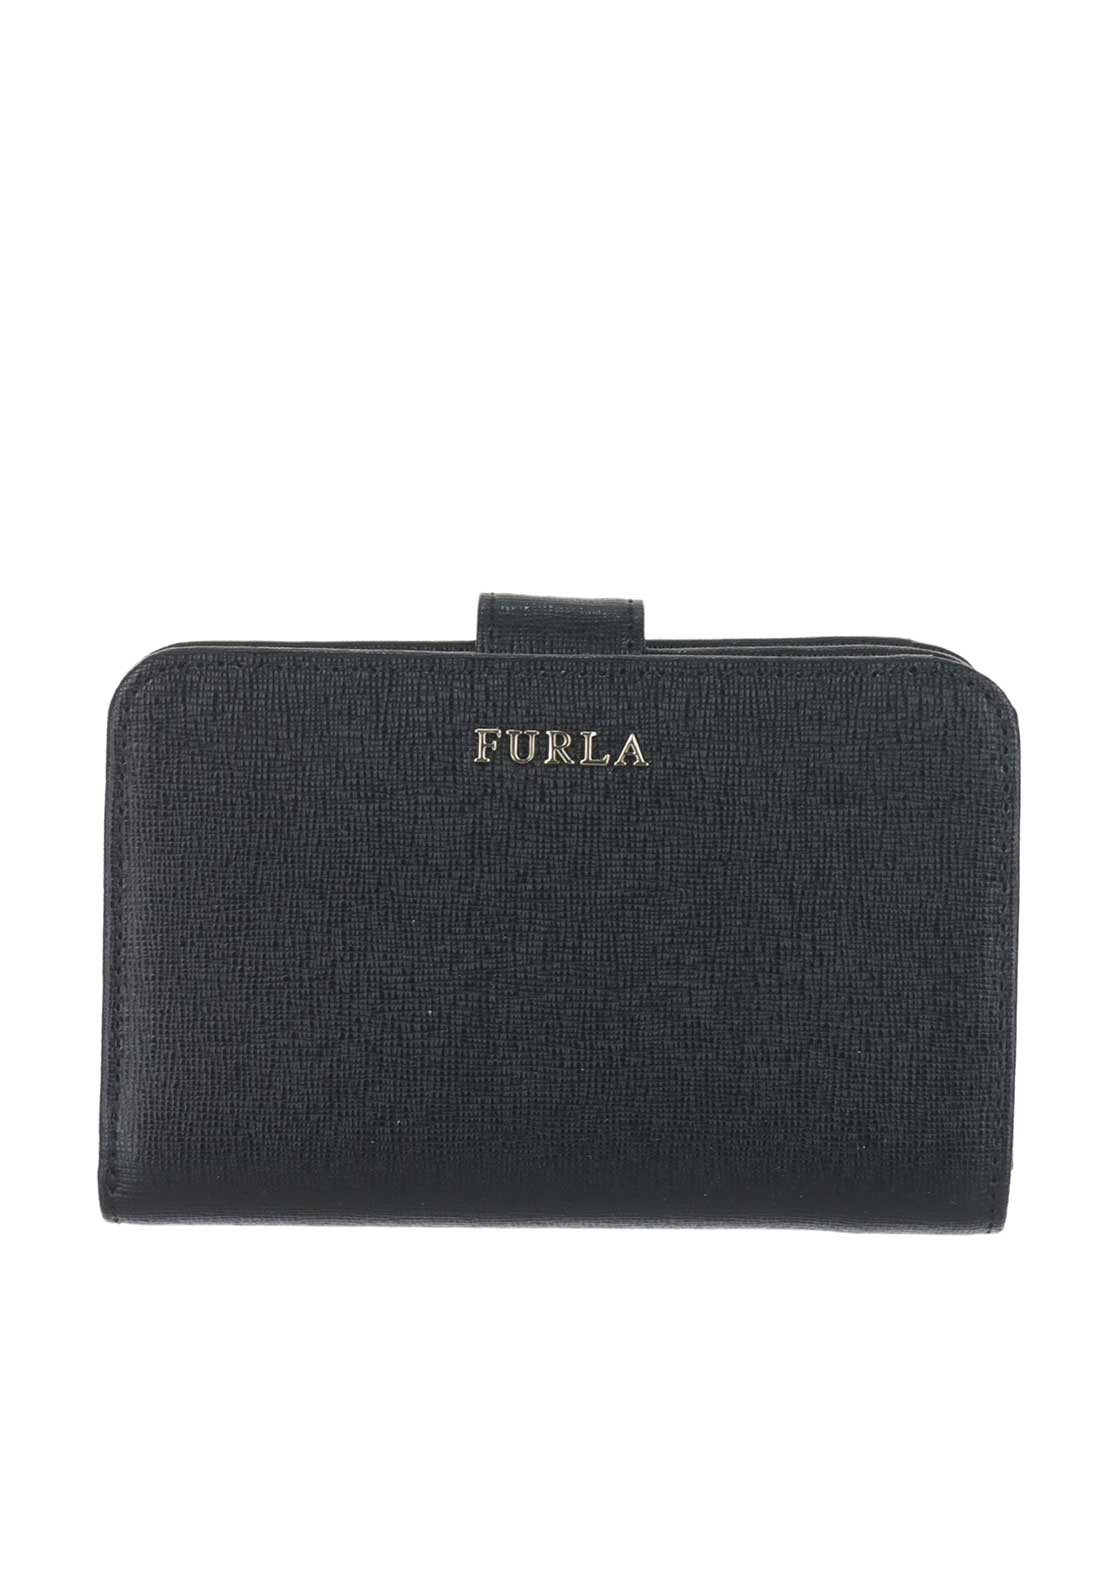 Furla Babylon Leather Fold over Purse, Black